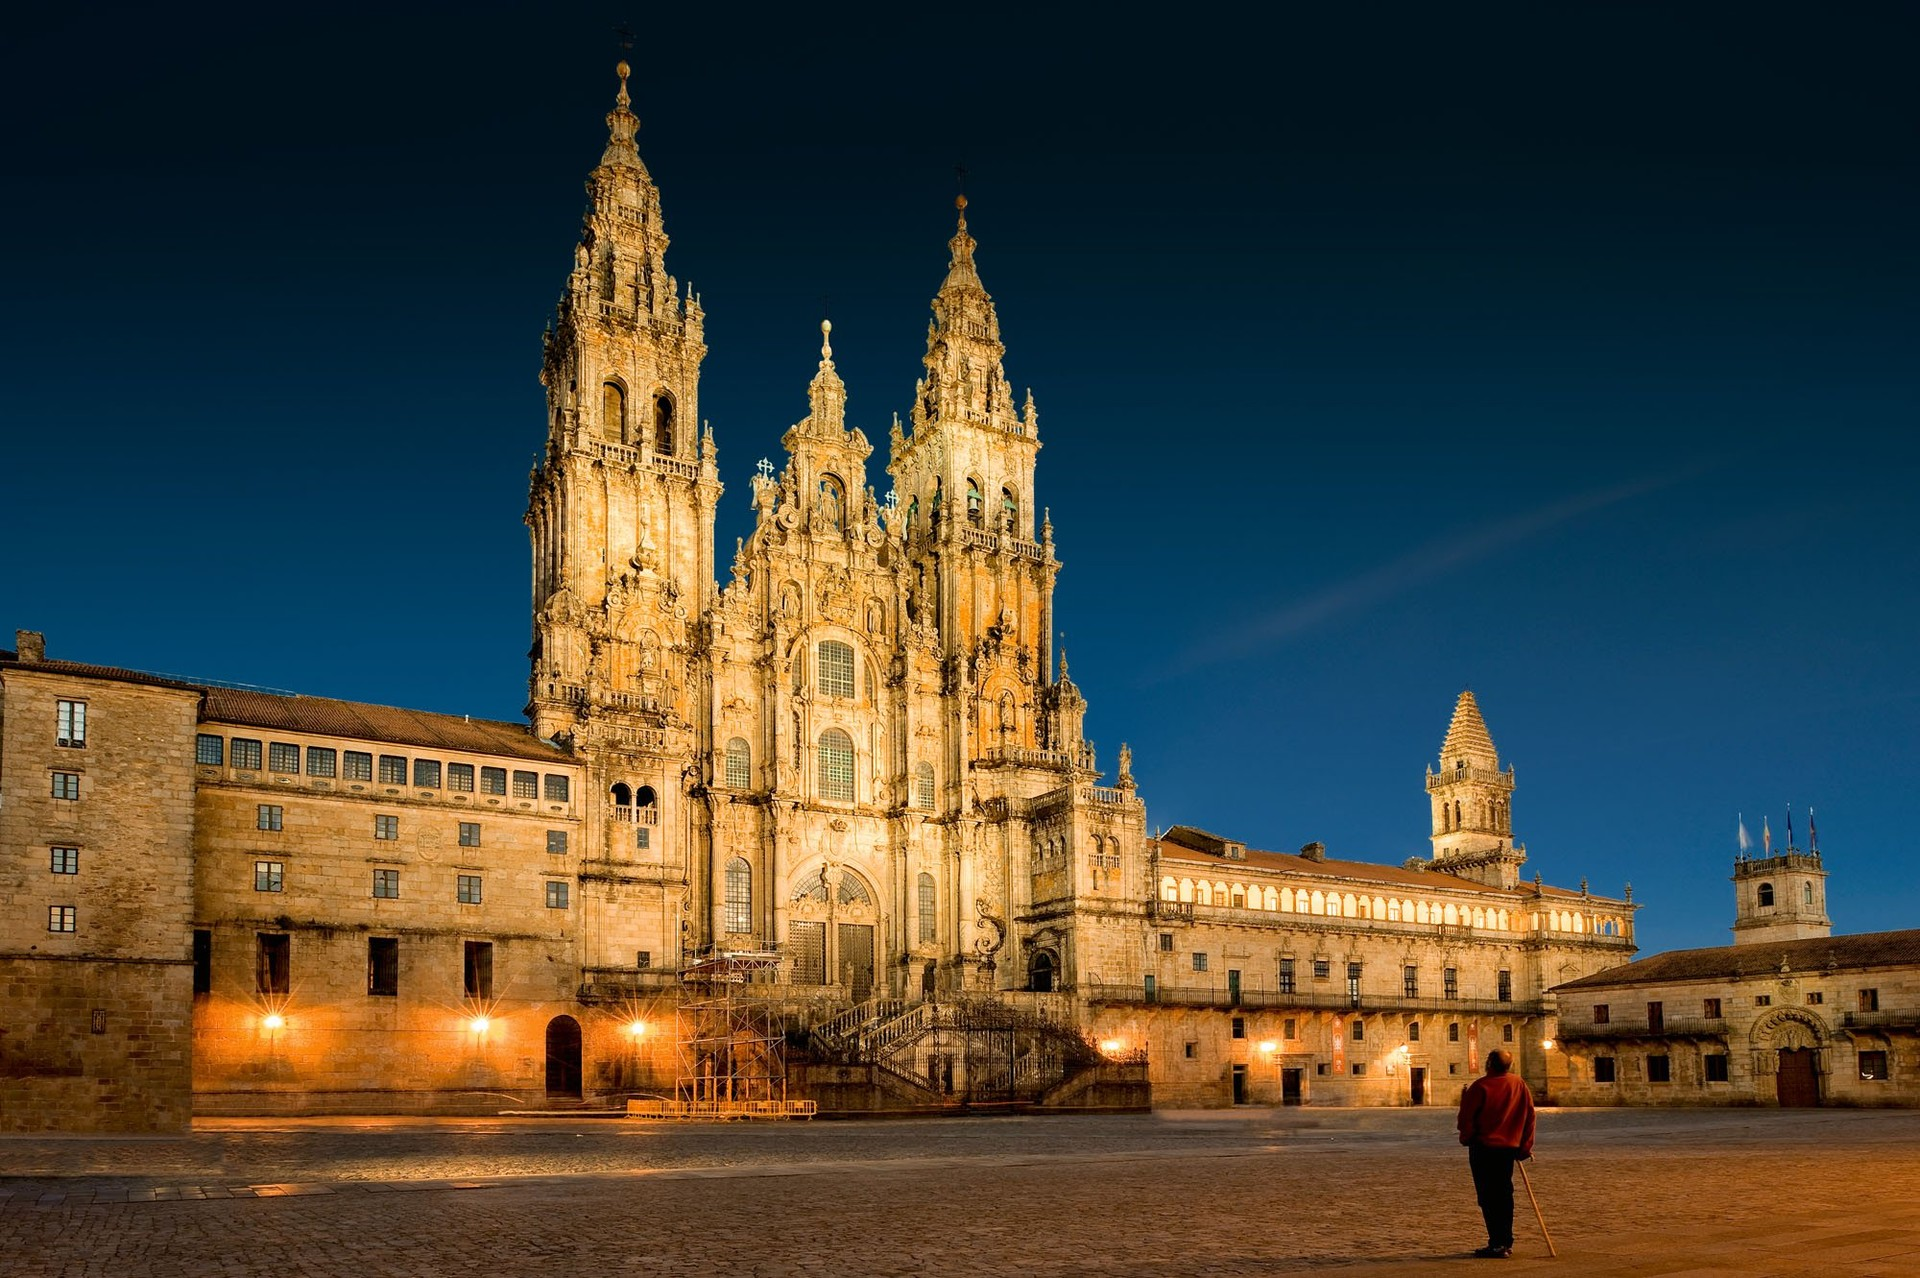 santiago de compostela women Our fully supported journey along the camino de santiago is through the most picturesque parts, starting from leon to santiago de compostella.